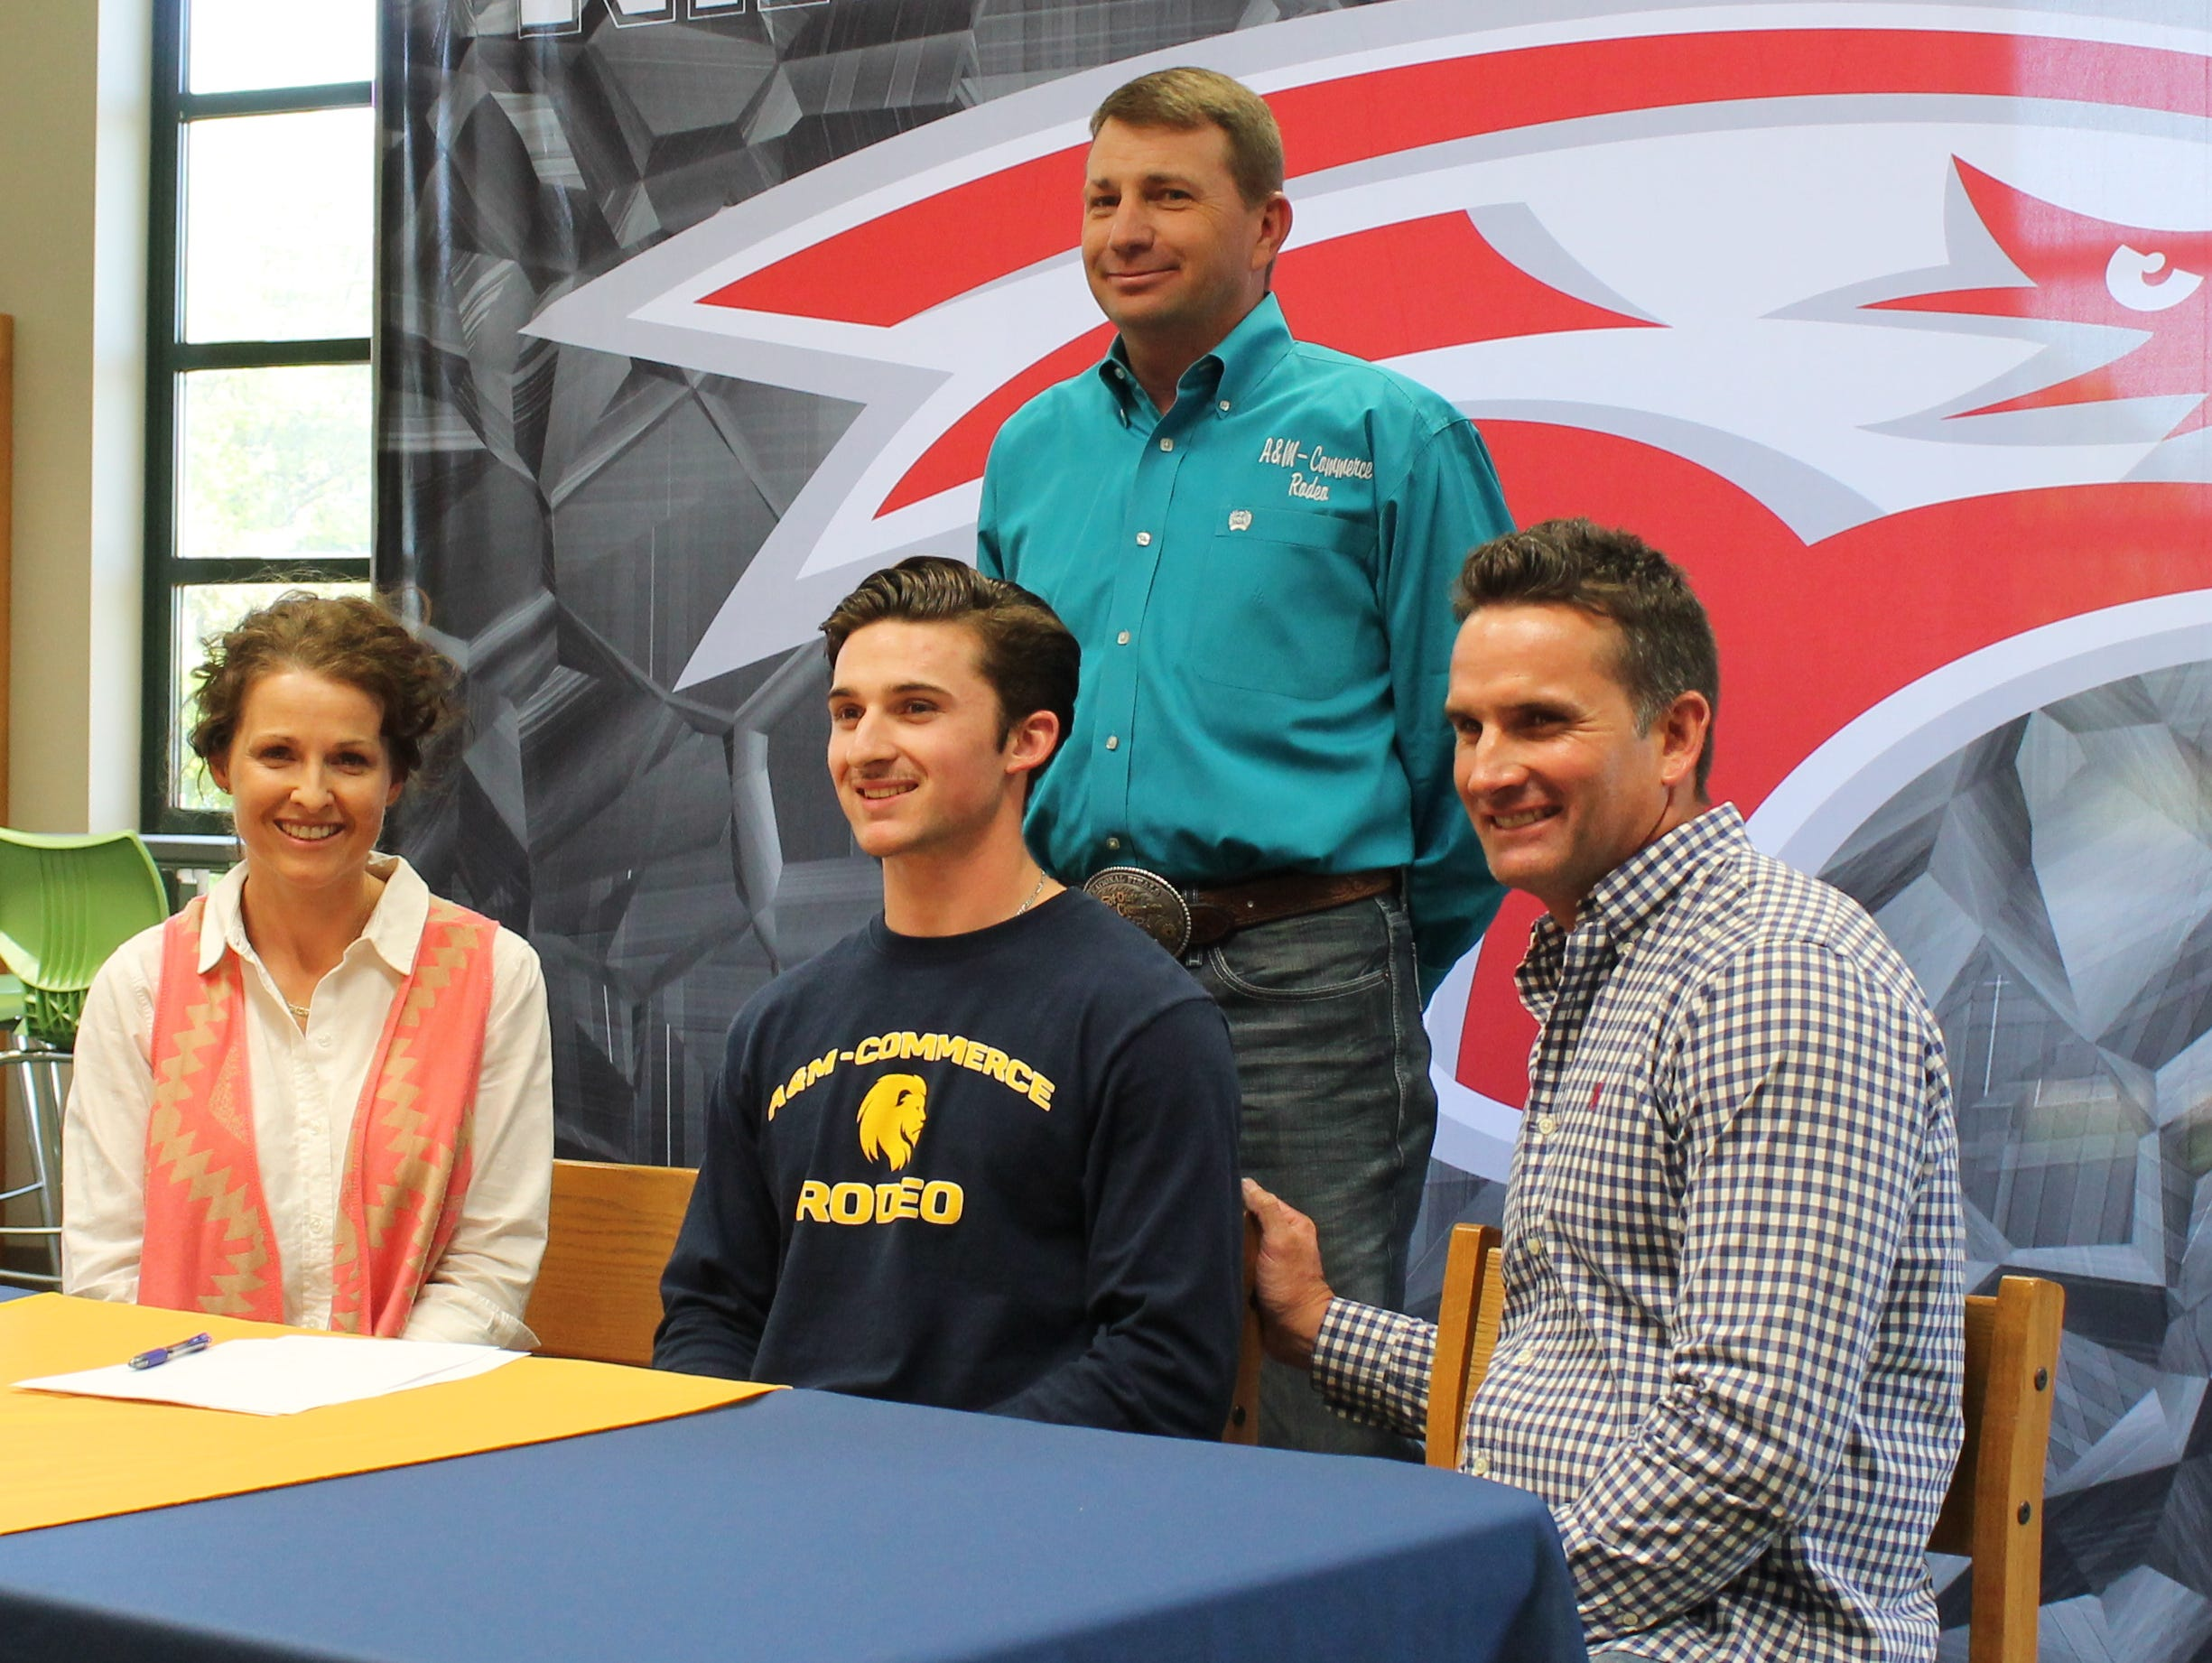 Nixa senior Gavin Michel (front, center) signed a letter of intent to join the rodeo team at Texas A&M University-Commerce at a ceremony May 4, 2016 at Nixa High School.